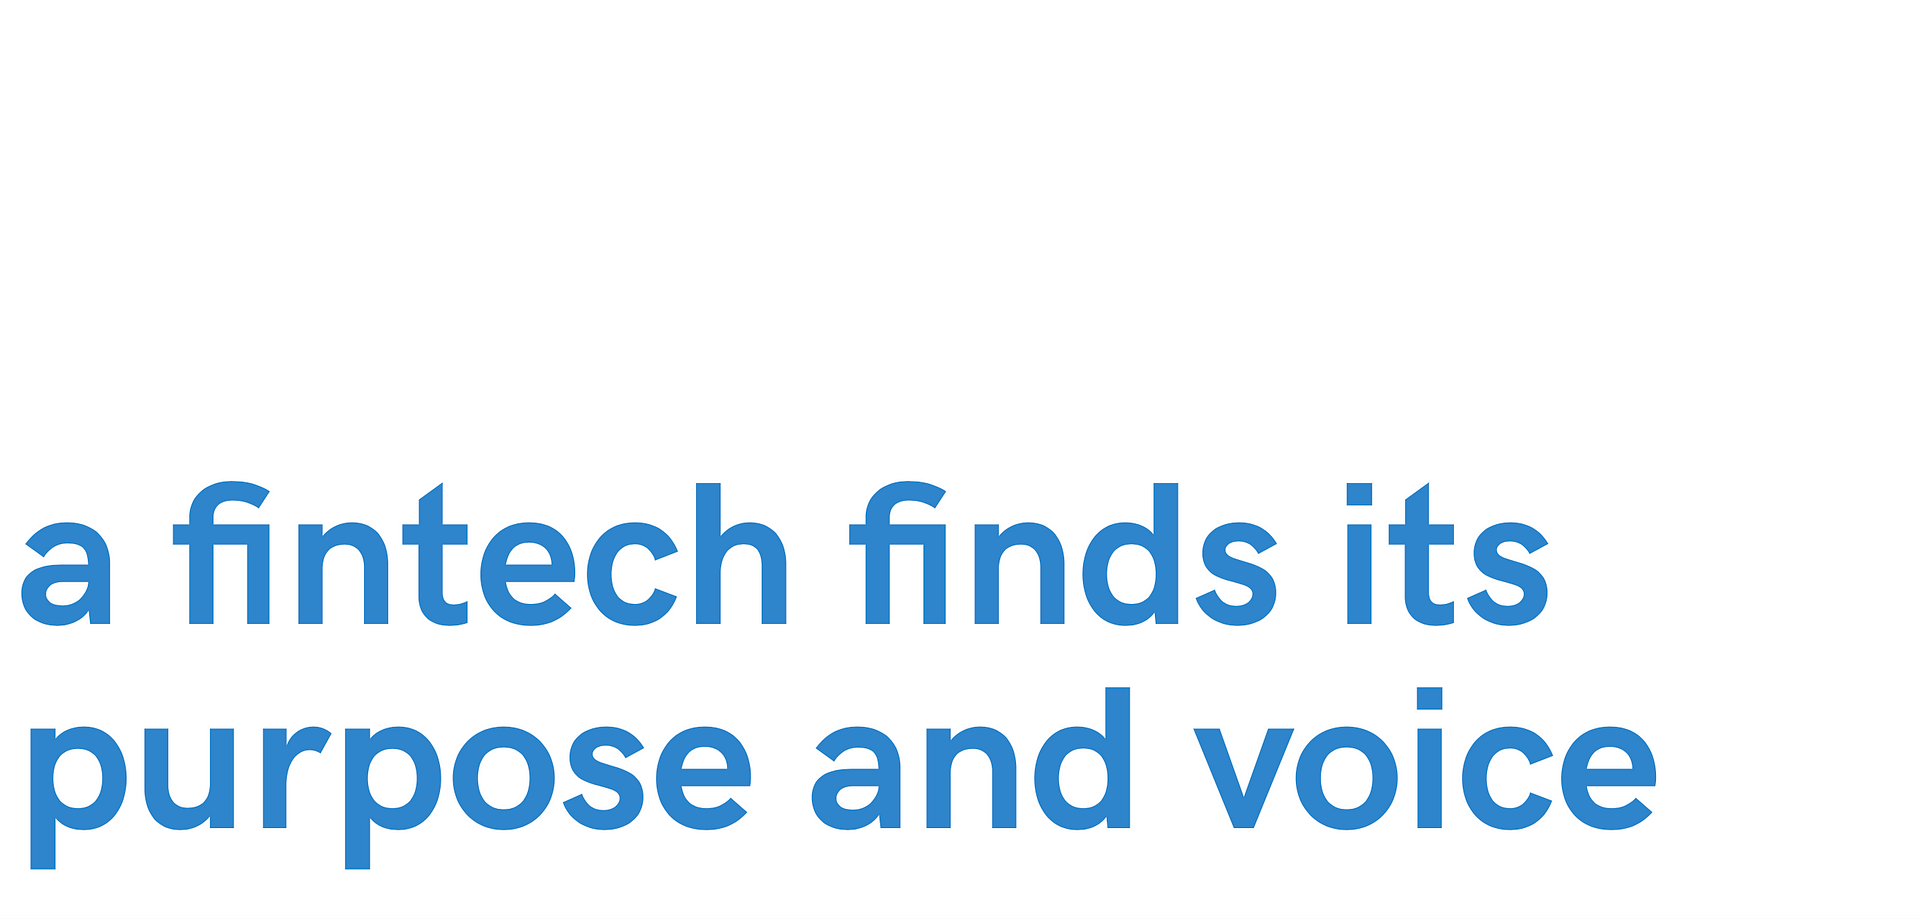 a fintech finds its purpose and voice